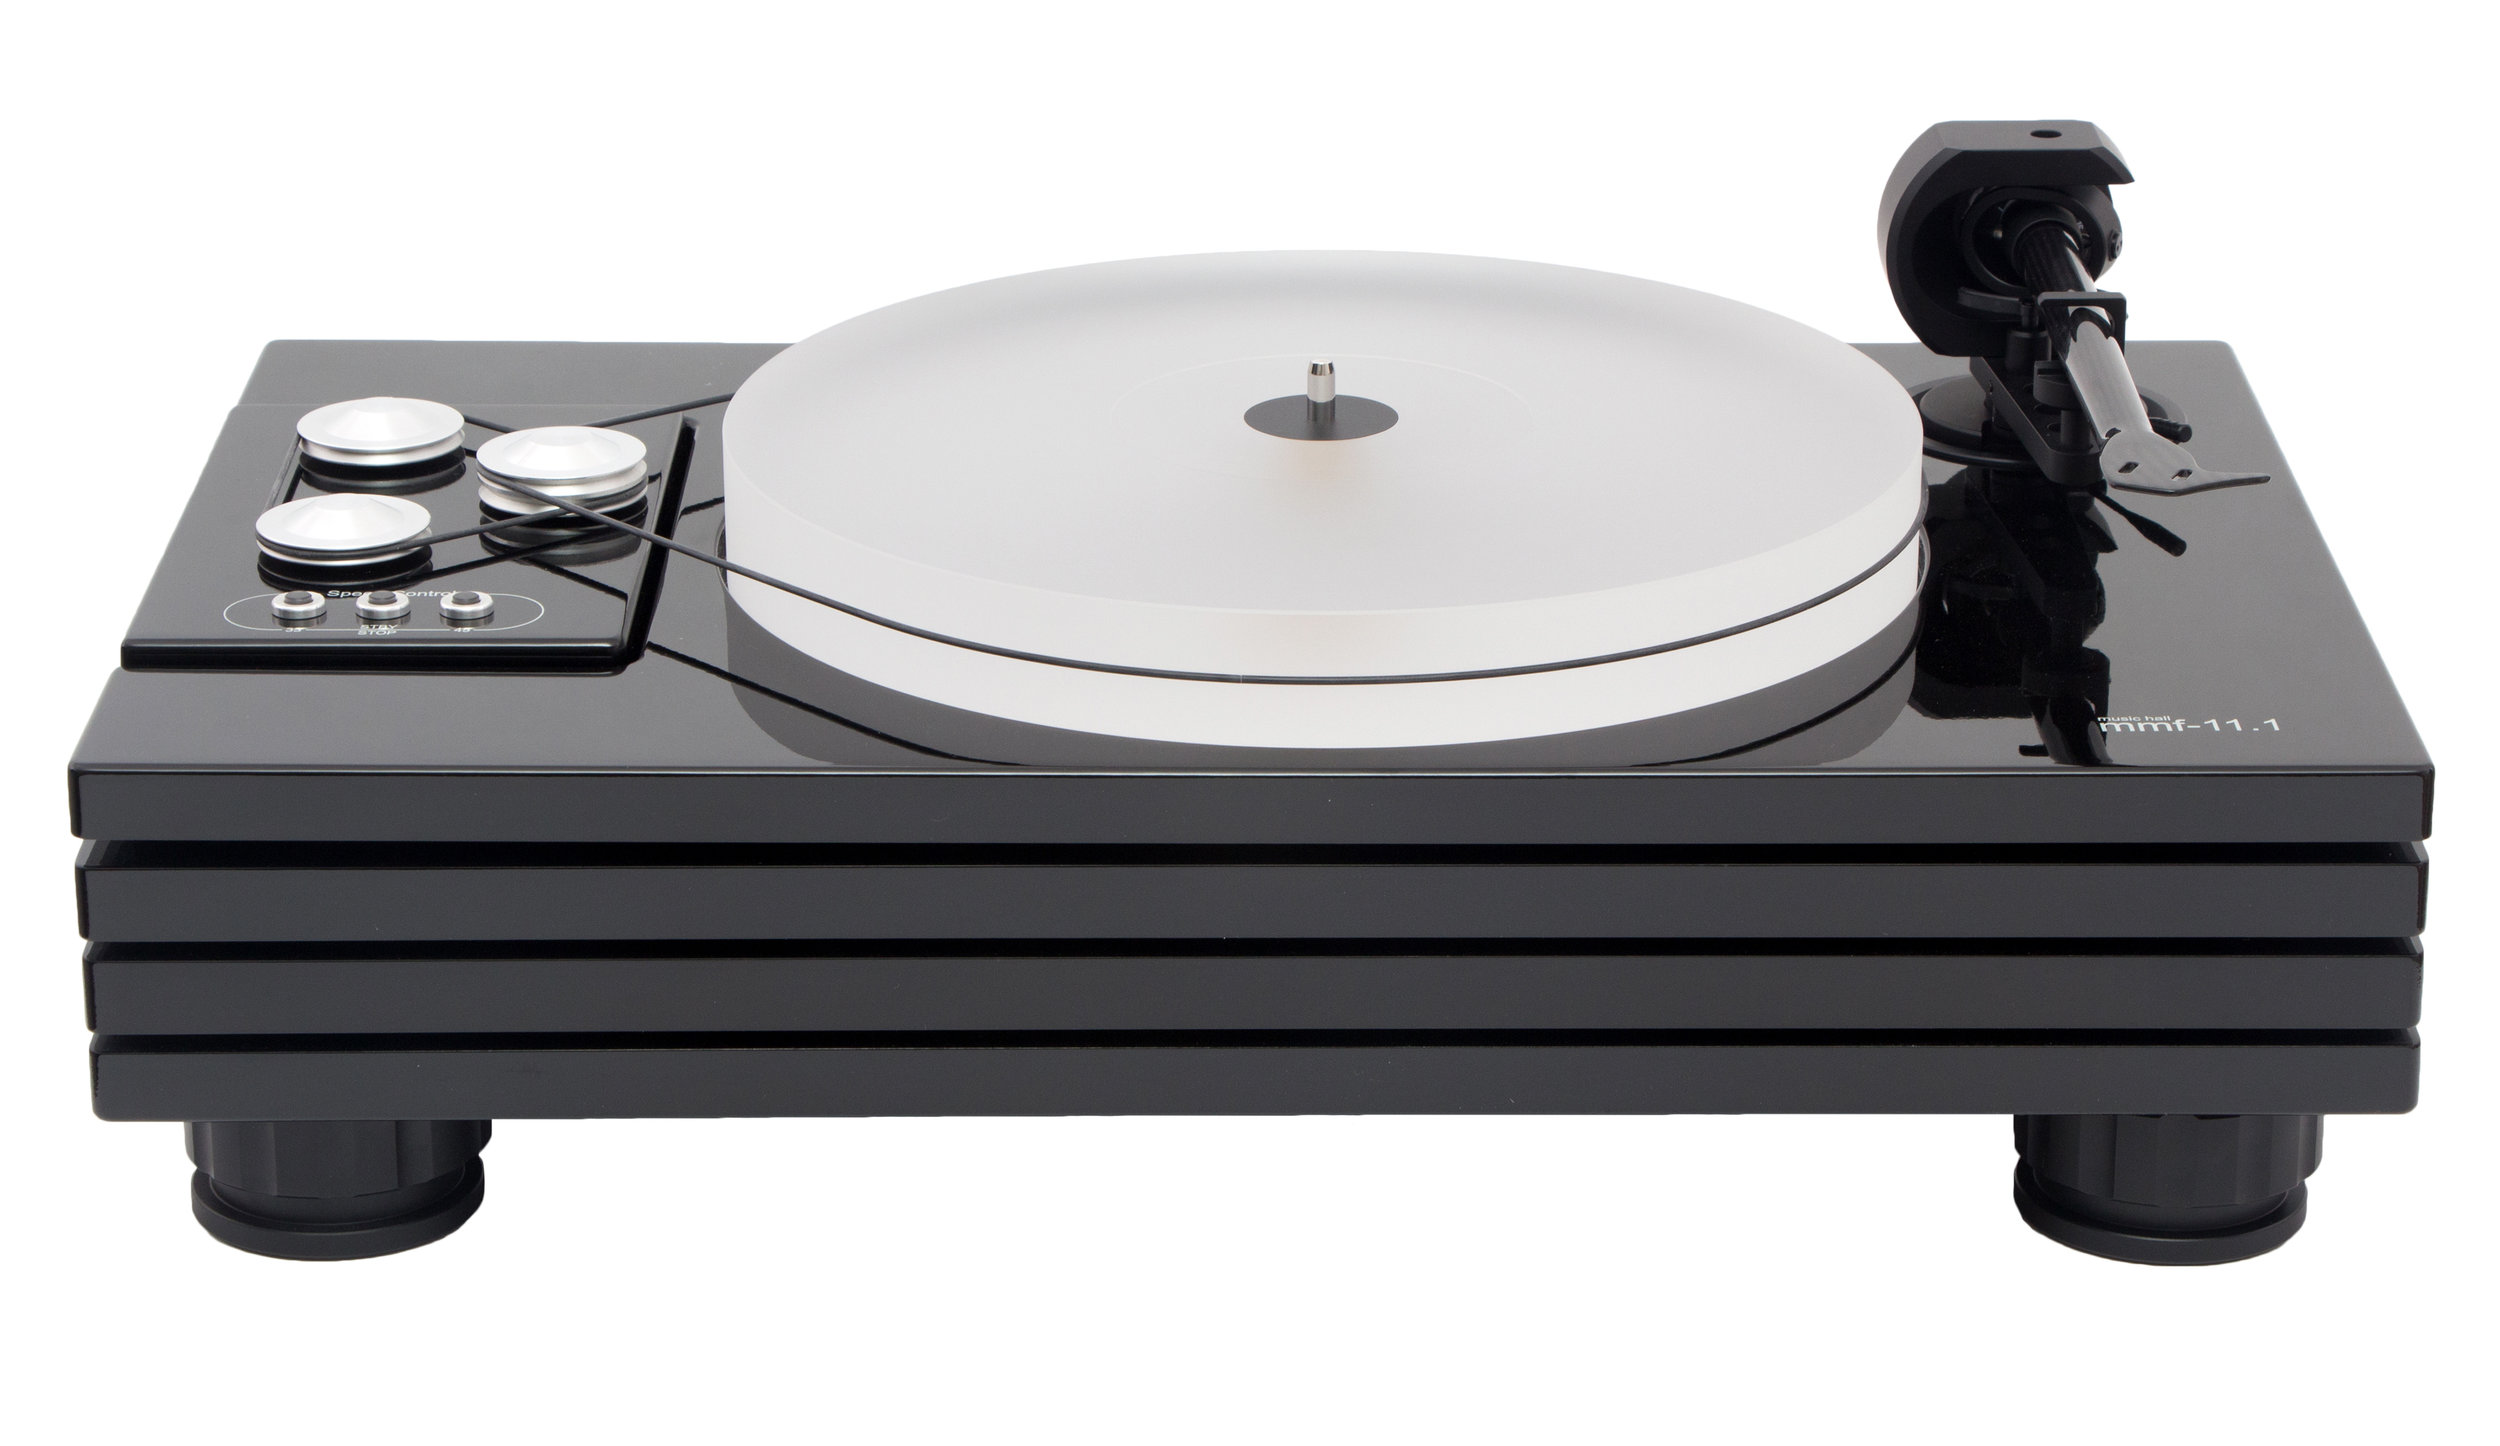 our latest flagship turntable   THE MUSIC HALL MMF-11.1 TURNTABLE, OUR LATEST FLAGSHIP, IS A 2-SPEED BELT-DRIVEN AUDIOPHILE  TURNTABLE, FEATURING THE UNIQUE QUADRUPLE-PLINTH CONSTRUCTION ORIGINATED BY MUSIC HALL.  The distinctive design isolates the critical sound reproducing components, each on their own plinth. The tonearm is mounted to the upper plinth and the inverted ceramic main bearing is mounted to the second plinth allowing the partially sunken 1 1/2″ acrylic platter to spin freely.  Moving the main bearing to the second plinth improved cartridge tracking and significantly lowered background noise. The adjustable magnetic-levitation isolation feet, microprocessor speed control, motors, flywheel, and wiring are all mounted to the bottom plinth. The motors, flywheel, and speed control are further isolated on their own vibration damped dual-plinth platform, which is separately isolated from the upper three main plinths.  Sorbothane hemispheres separate each of the three main plinths and provide additional vibration damping. The bottom plinth functions as a mass-loaded resonant sink for the entire turntable. Two motors and a flywheel are used to increase torque and speed stability. The mmf-11.1 comes in a high-gloss piano black lacquer finish and ships without cartridge. A large encapsulating acrylic dustcover is included.